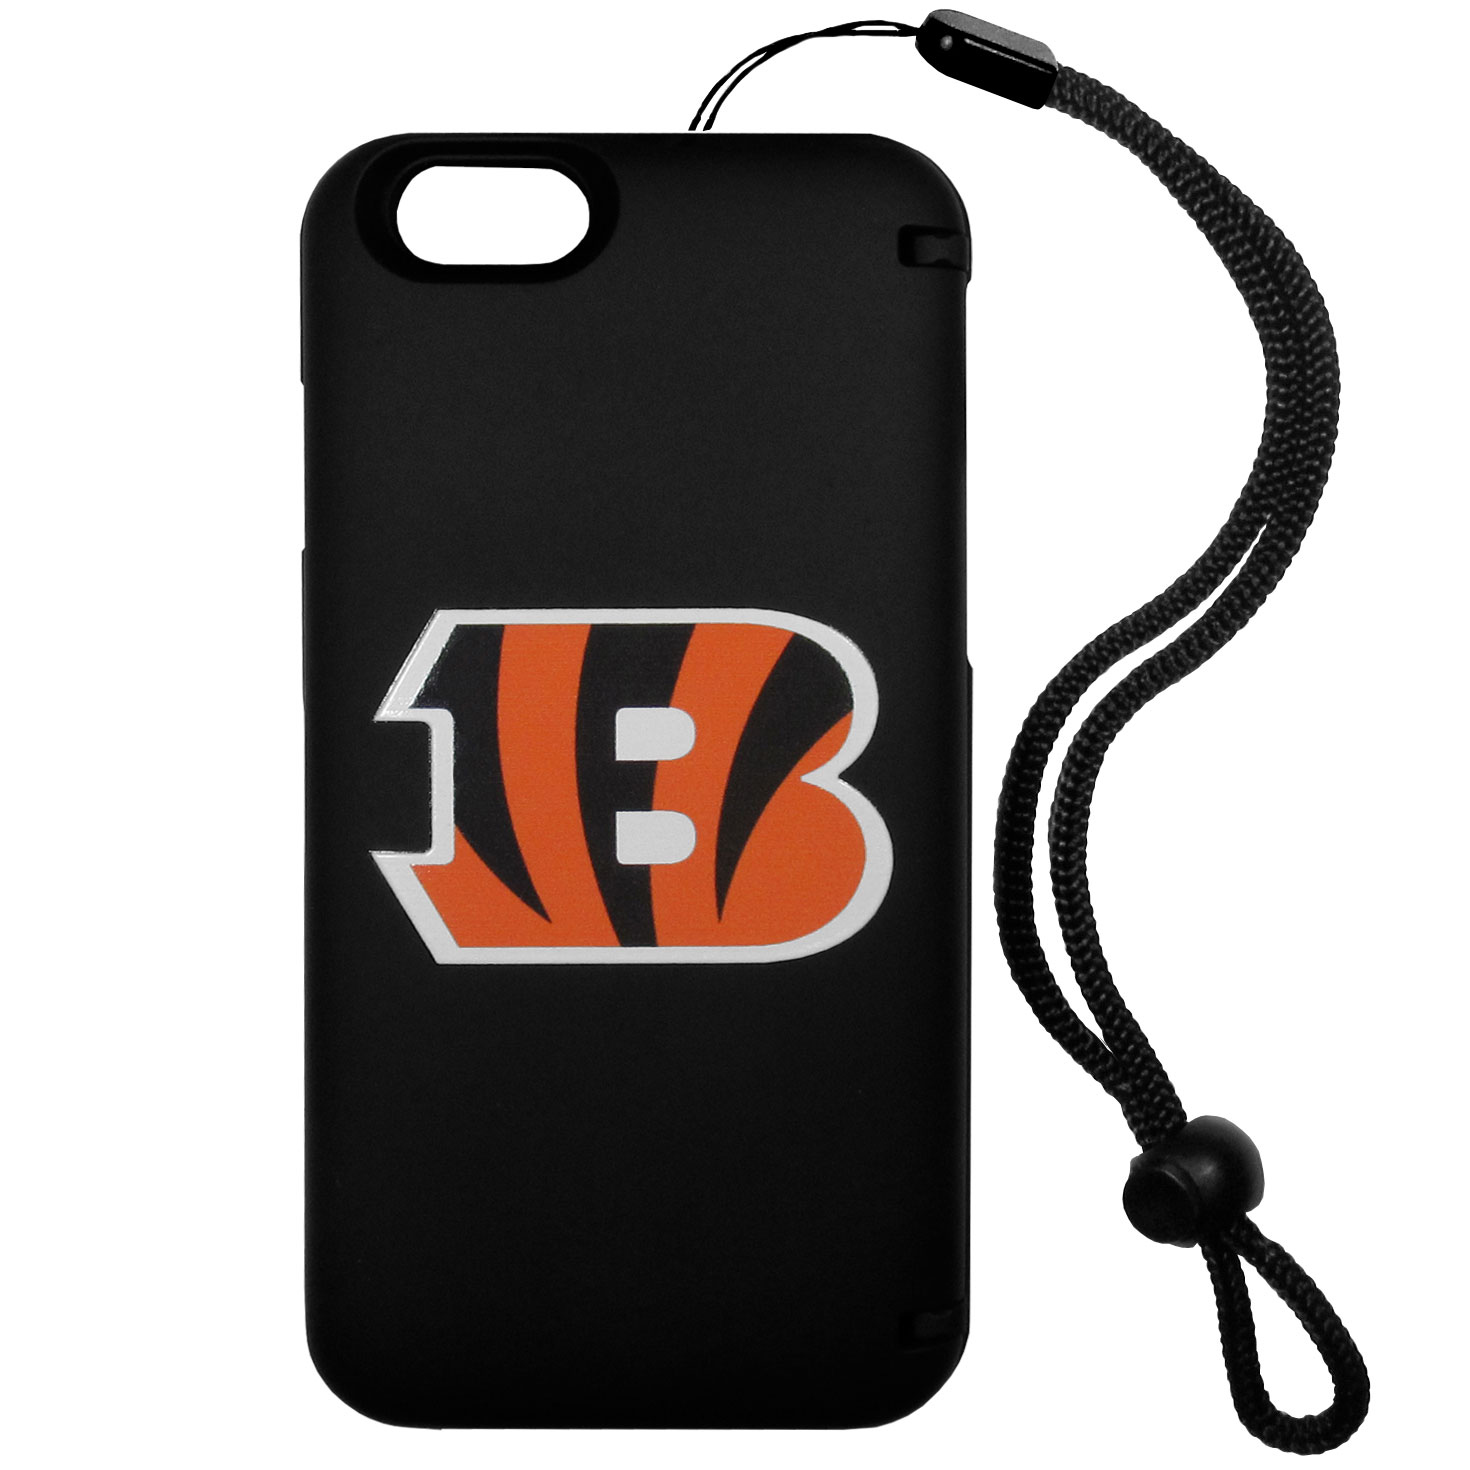 Cincinnati Bengals iPhone 6 Everything Case - This case really does have everything but the kitchen sink! The hidden compartment lets you keep your cards, money and tickets to the big game safe and secure and has a compact mirror so you can make sure your game face is ready to go. It also comes with a kickstand to make chatting and watching videos a breeze. The wrist strap allows you to travel with ease with your everything case. If that's not enough, it also comes with the Cincinnati Bengals logo printed in expert detail on the front.